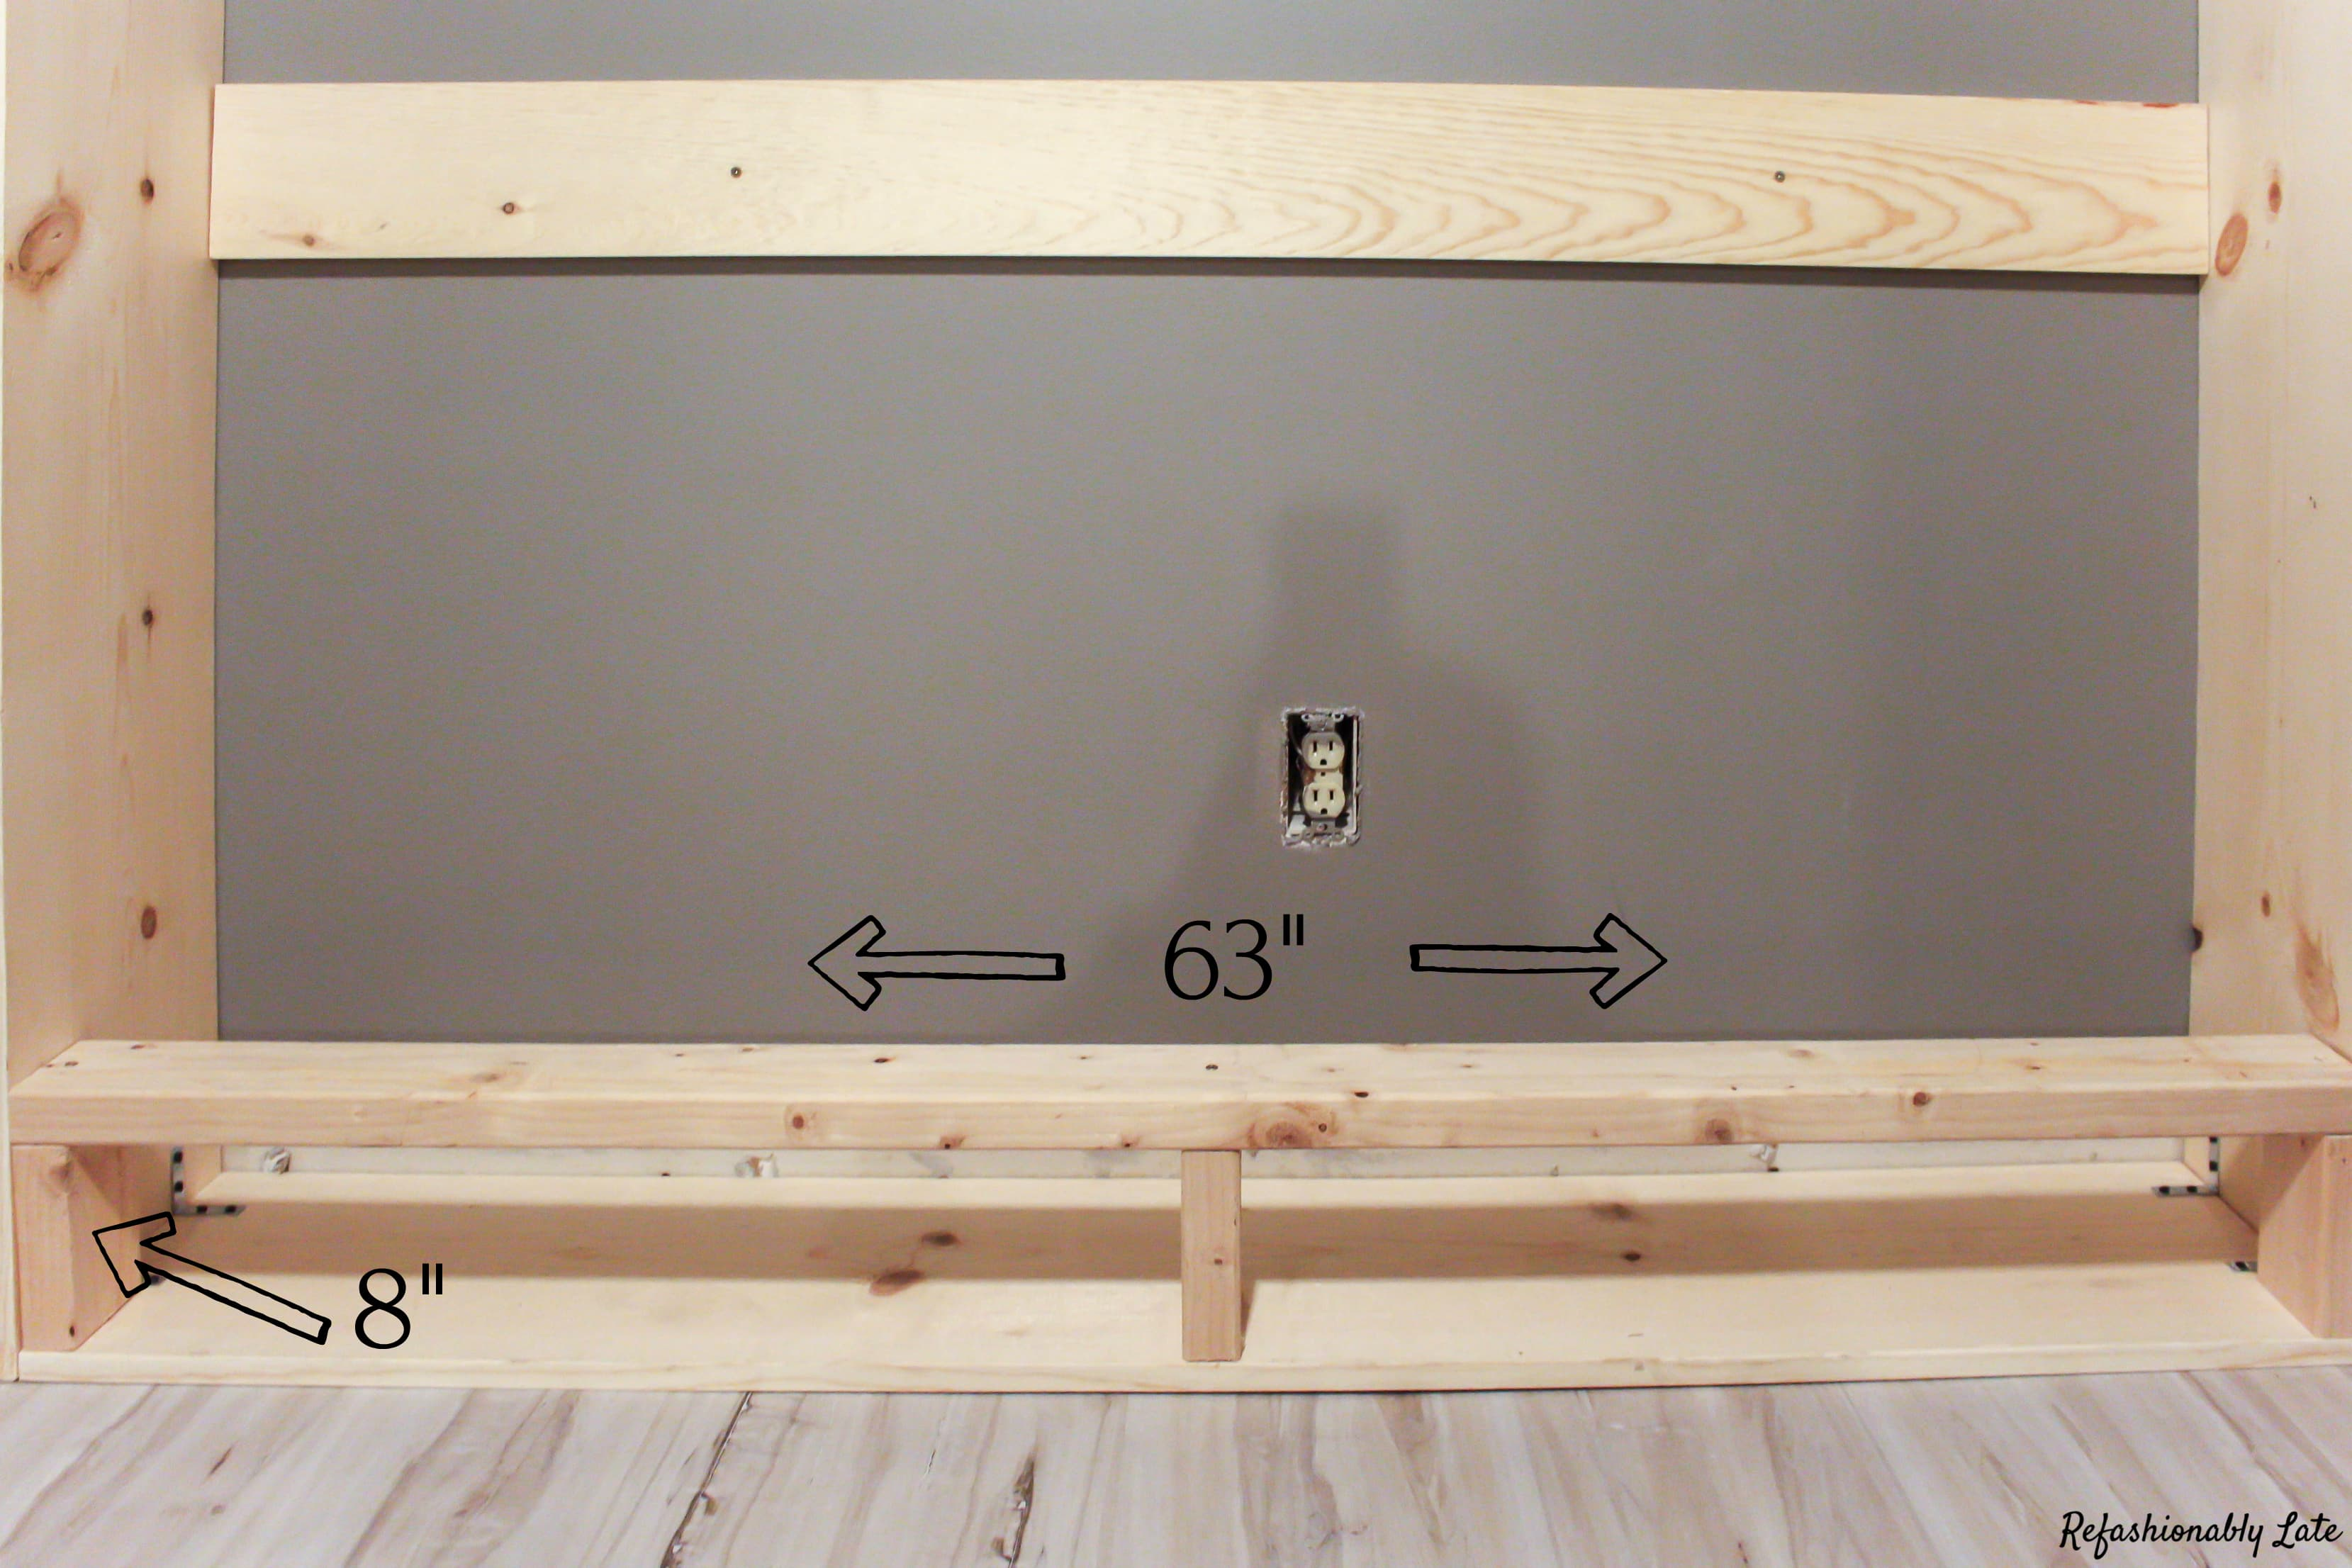 base of murphy bed frame with measurements on white maple vinyl flooring